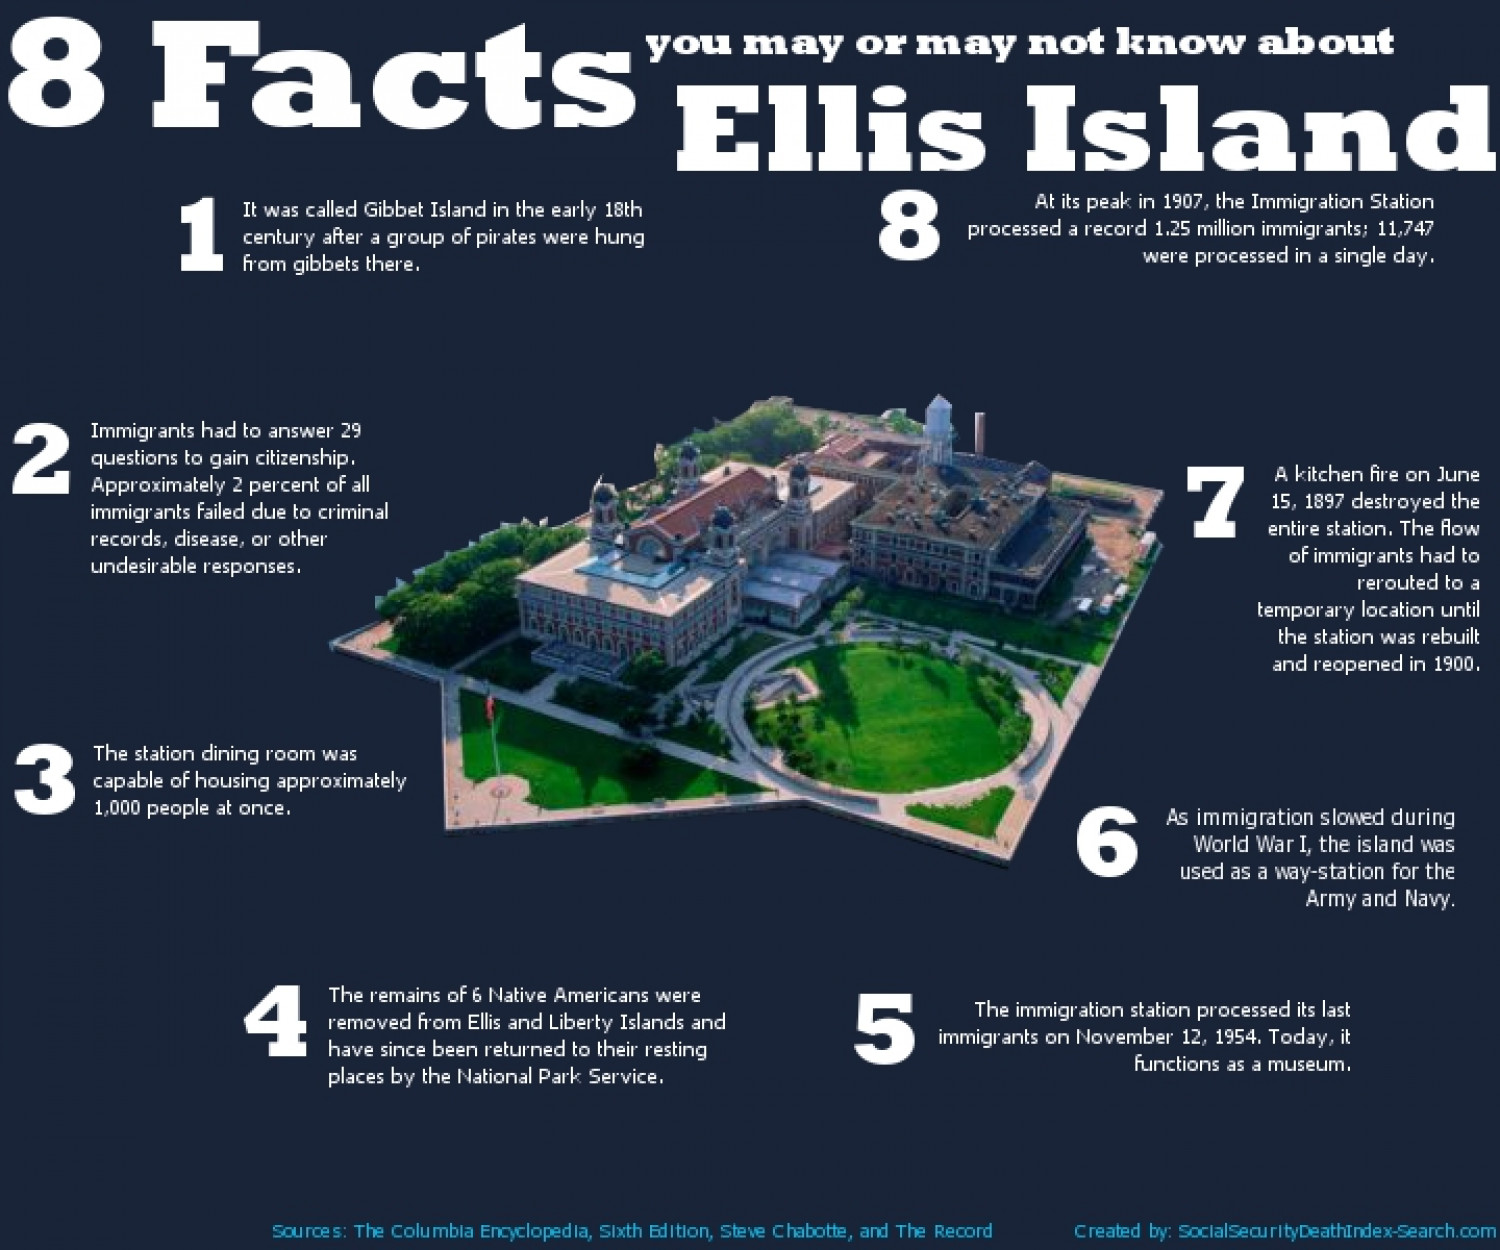 8 Facts About Ellis Island